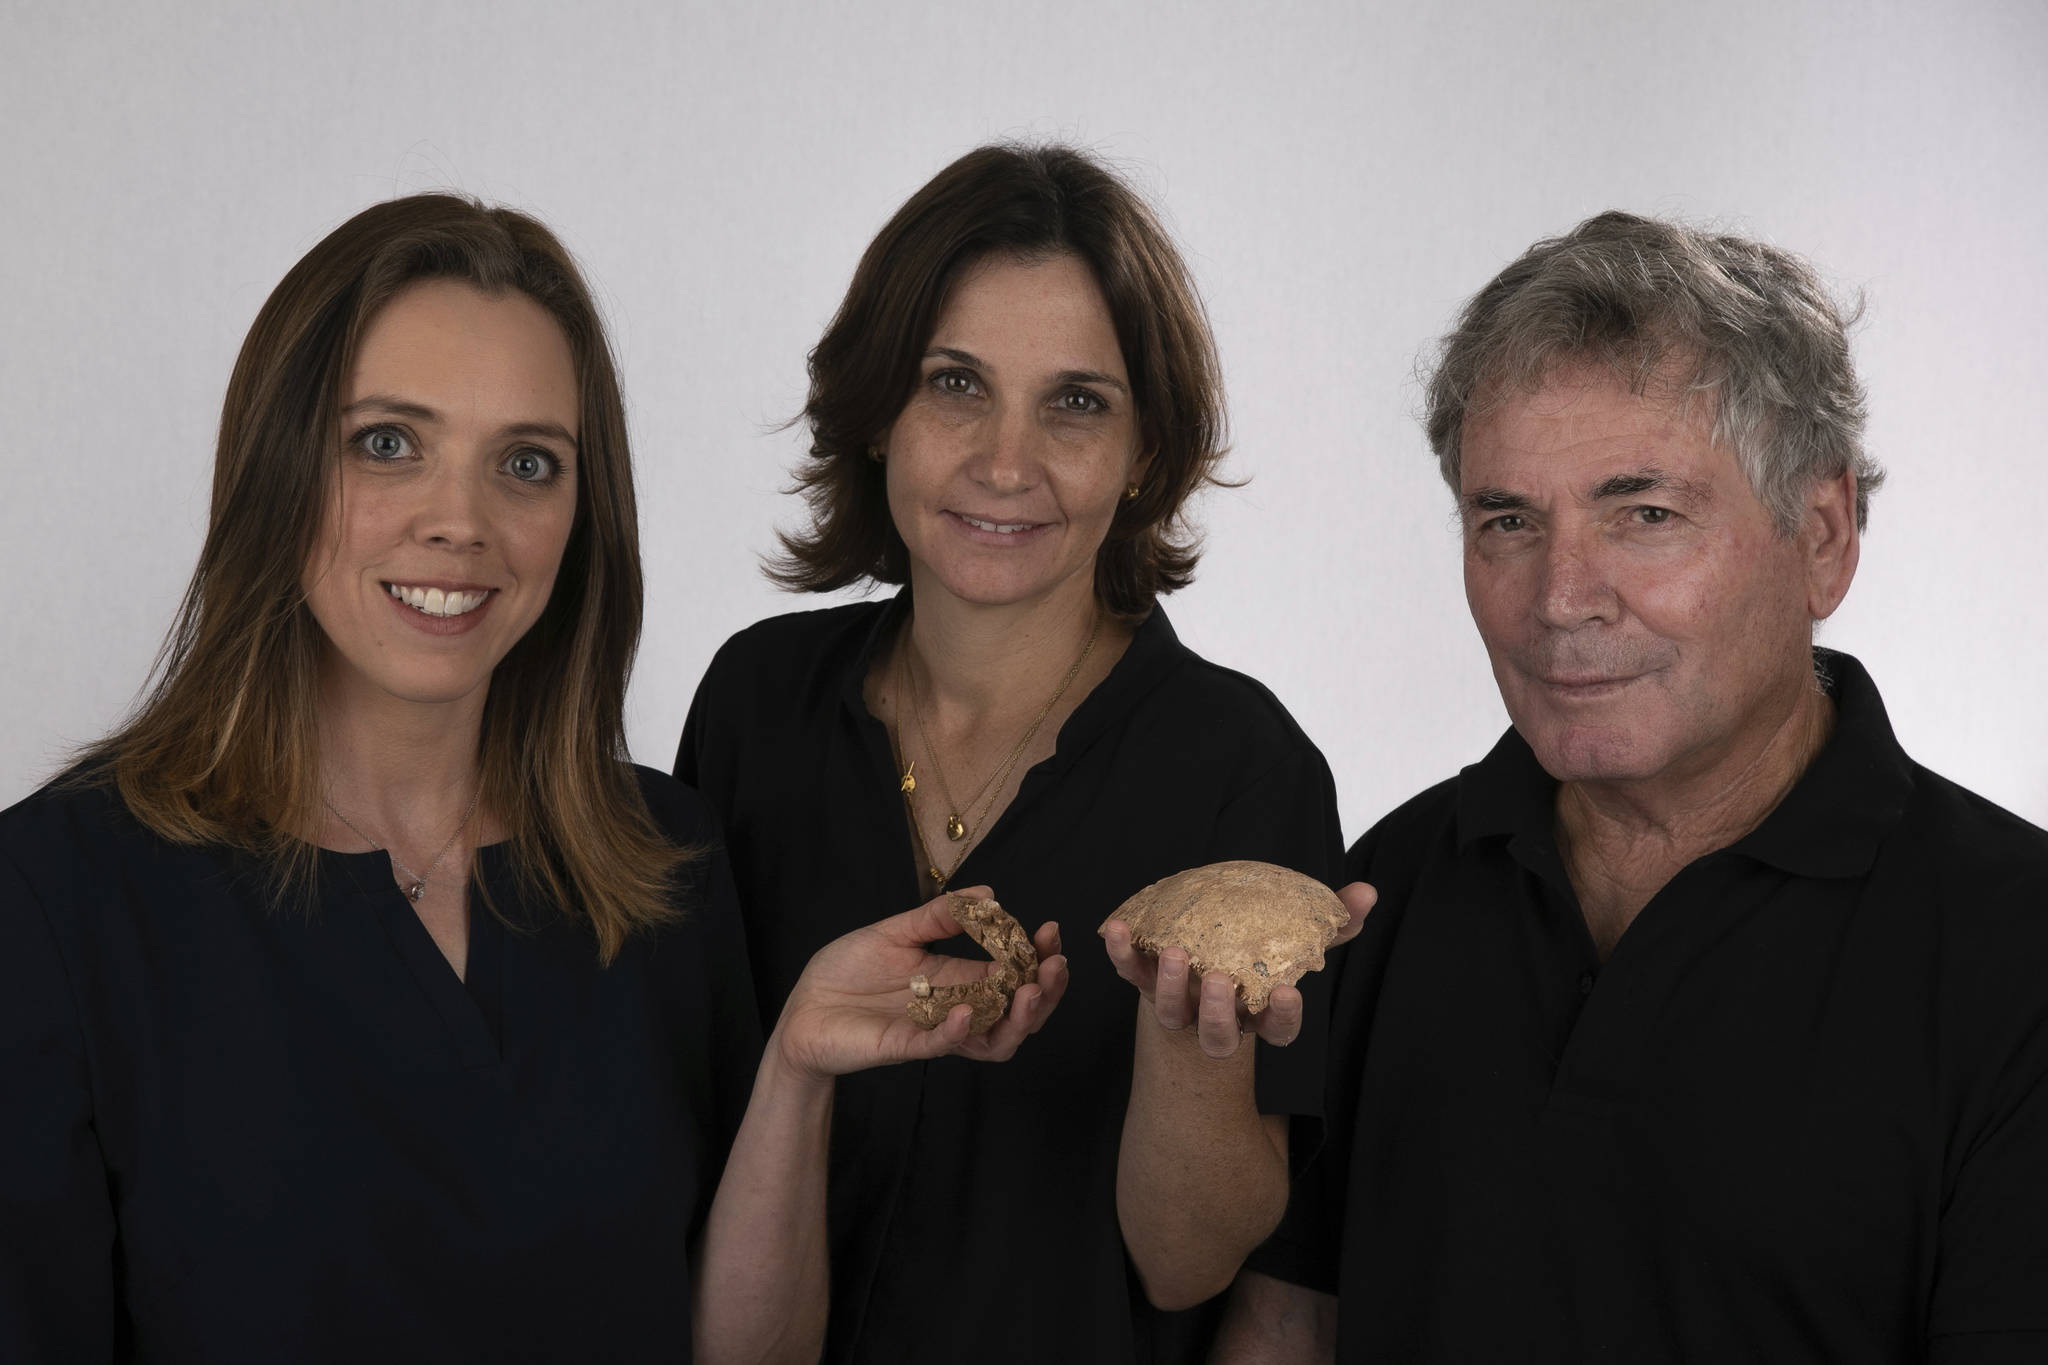 This undated photo provided by Tel Aviv University in June 2021 shows, from left, Rachel Sarig, Hila May and Israel Hershkovitz holding human ancestor fossils found in Neher Ramla, Israel. On Thursday, June 24, 2021, scientists reported that bones found in an Israeli quarry are from a branch of the human evolutionary tree and are 120,000 to 140,000 years old. (Avi Levin and Ilan Theiler/Sackler Faculty of Medicine, Tel Aviv University via AP)